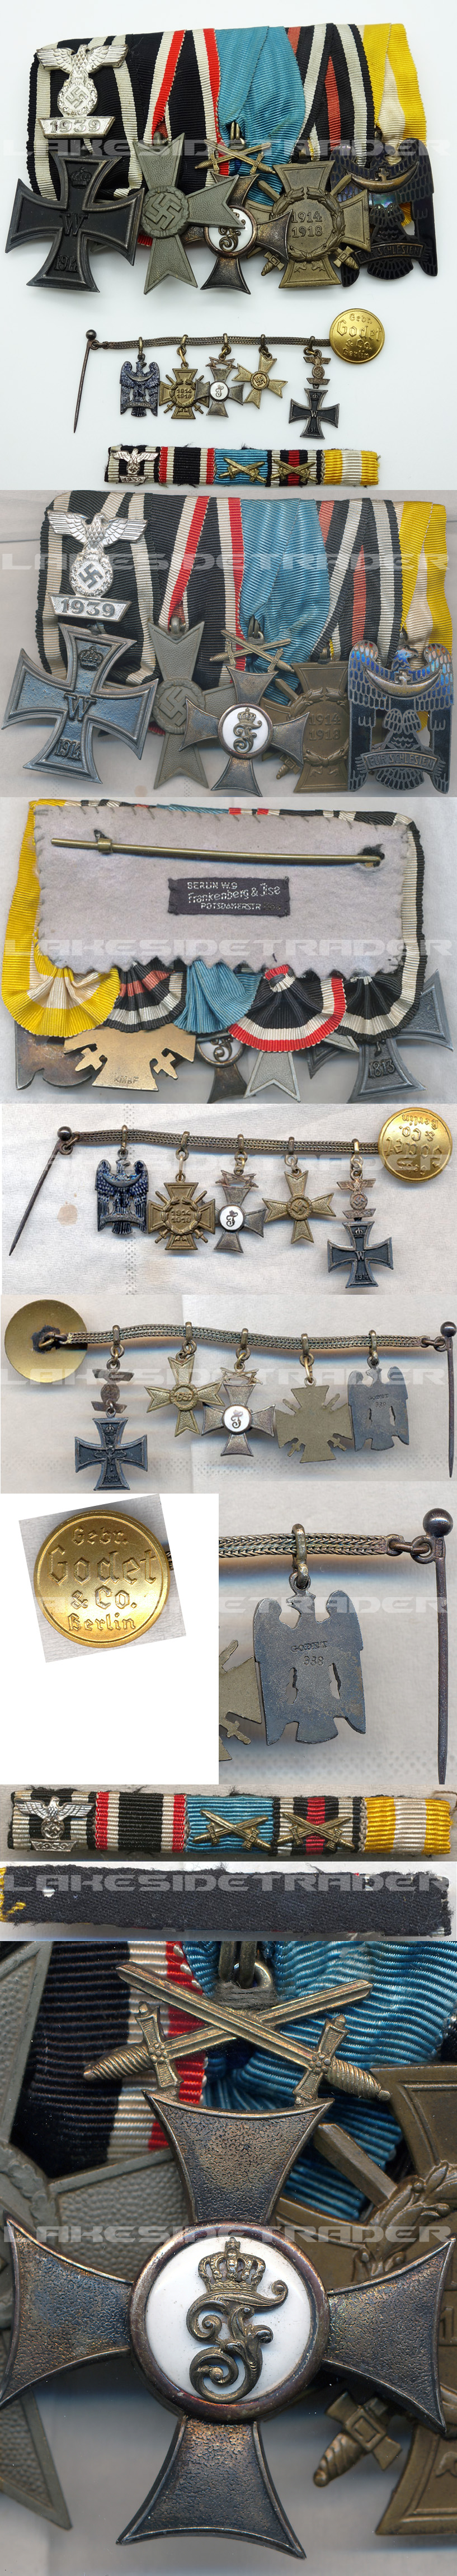 Five Place Medal Bar with Ribbon bar and Godet Miniatures